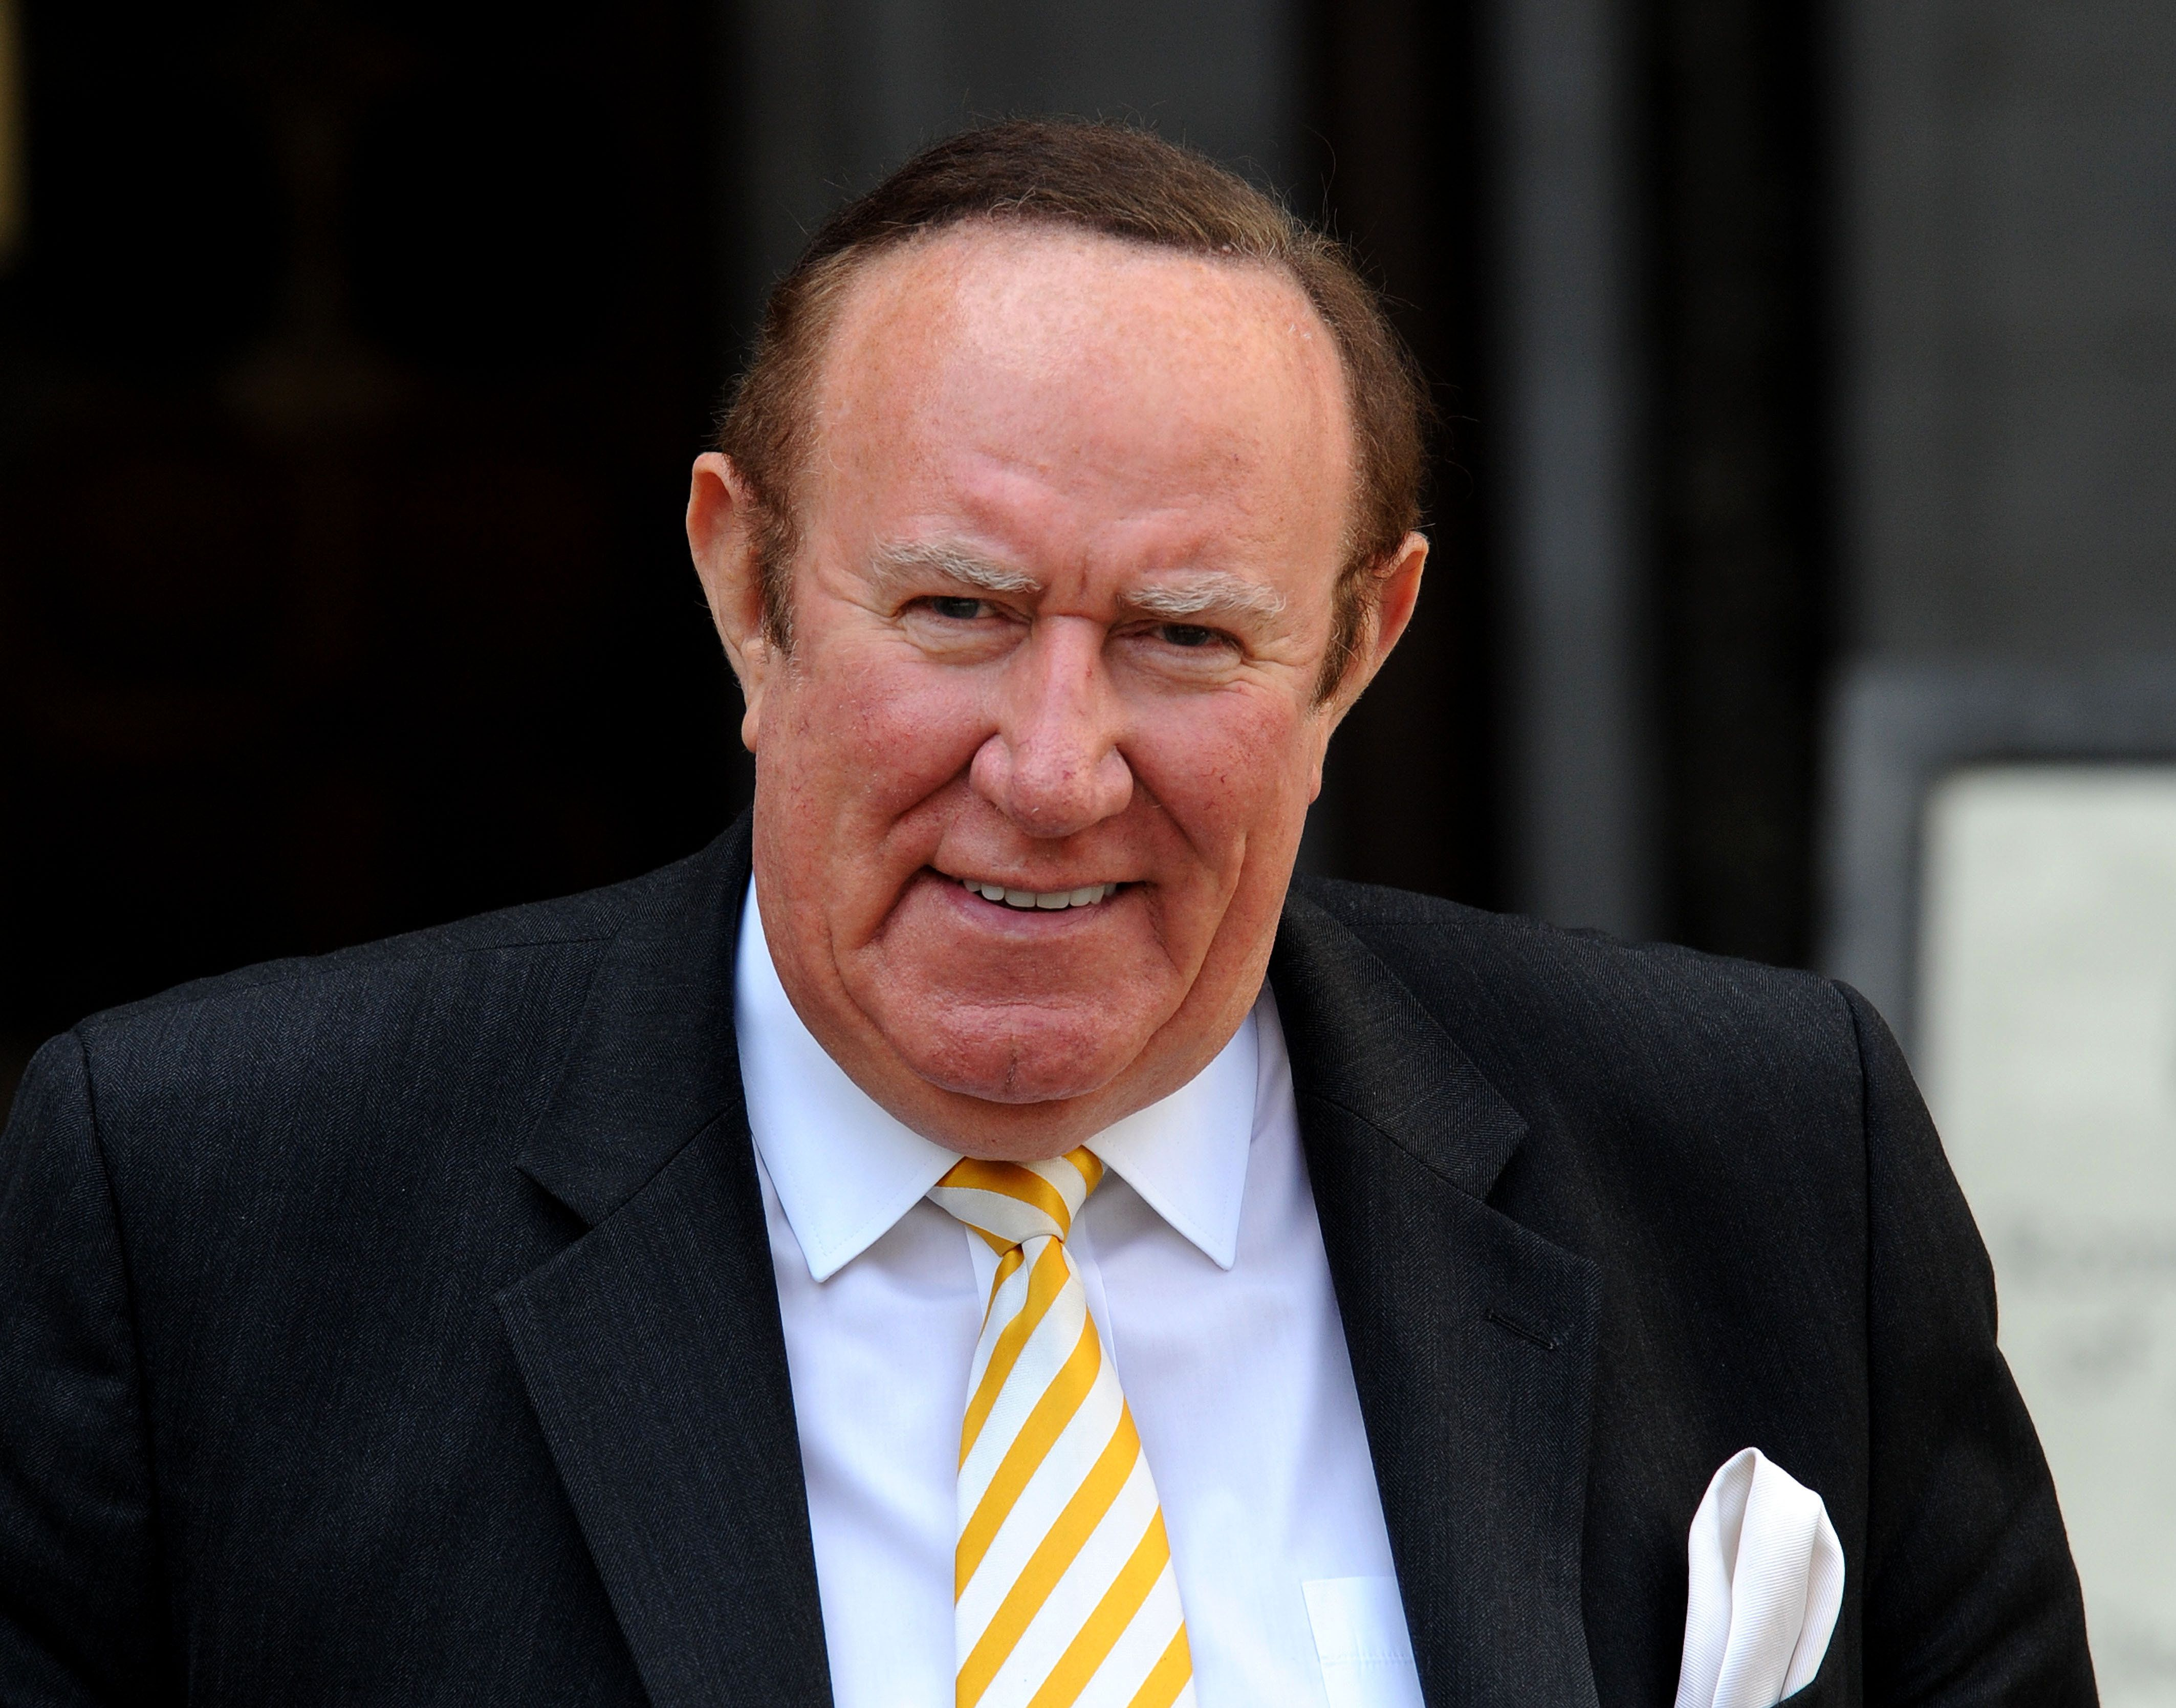 Andrew Neil Launches Blistering Attack On The Left For Letting Anti-Semitism